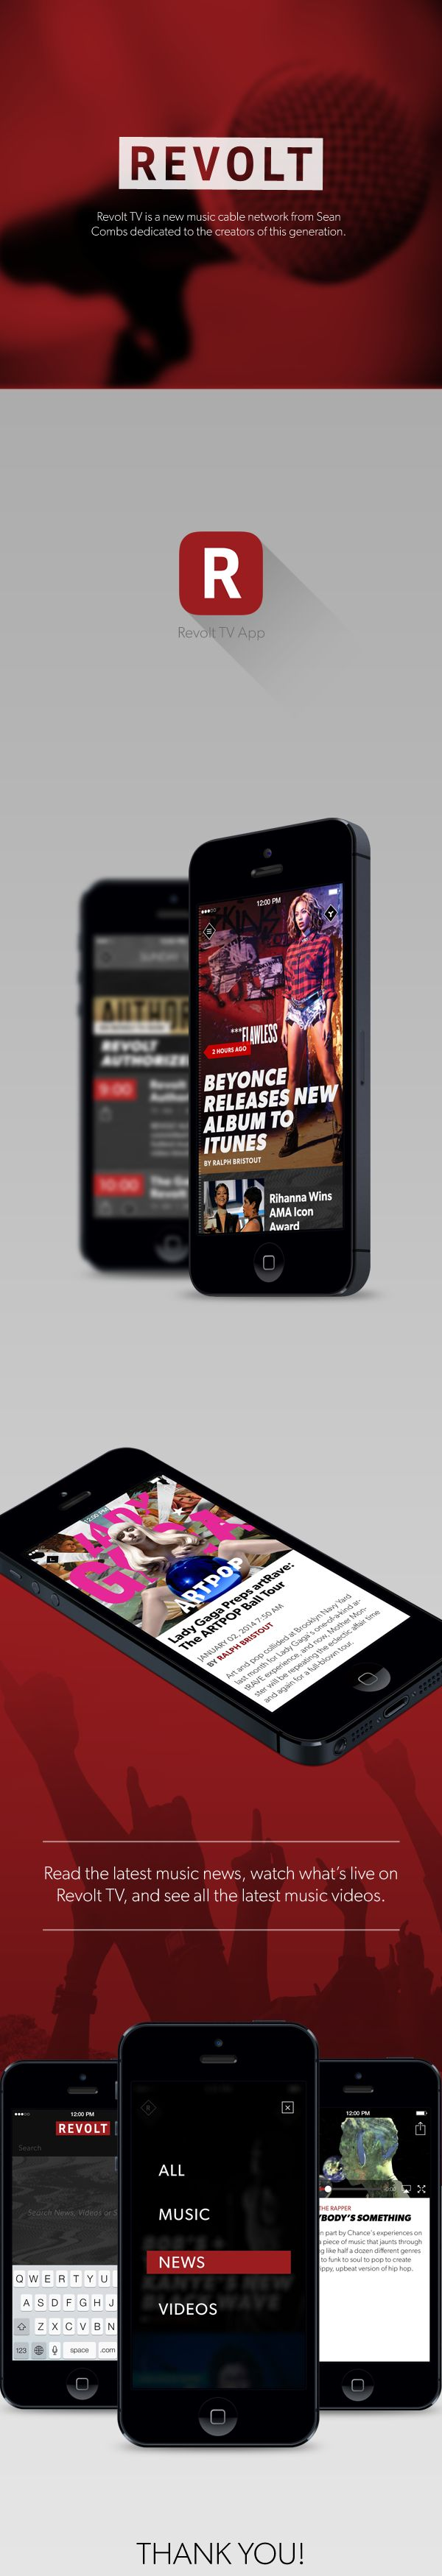 Revolt TV Mobile App by Myan Duong, via Behance